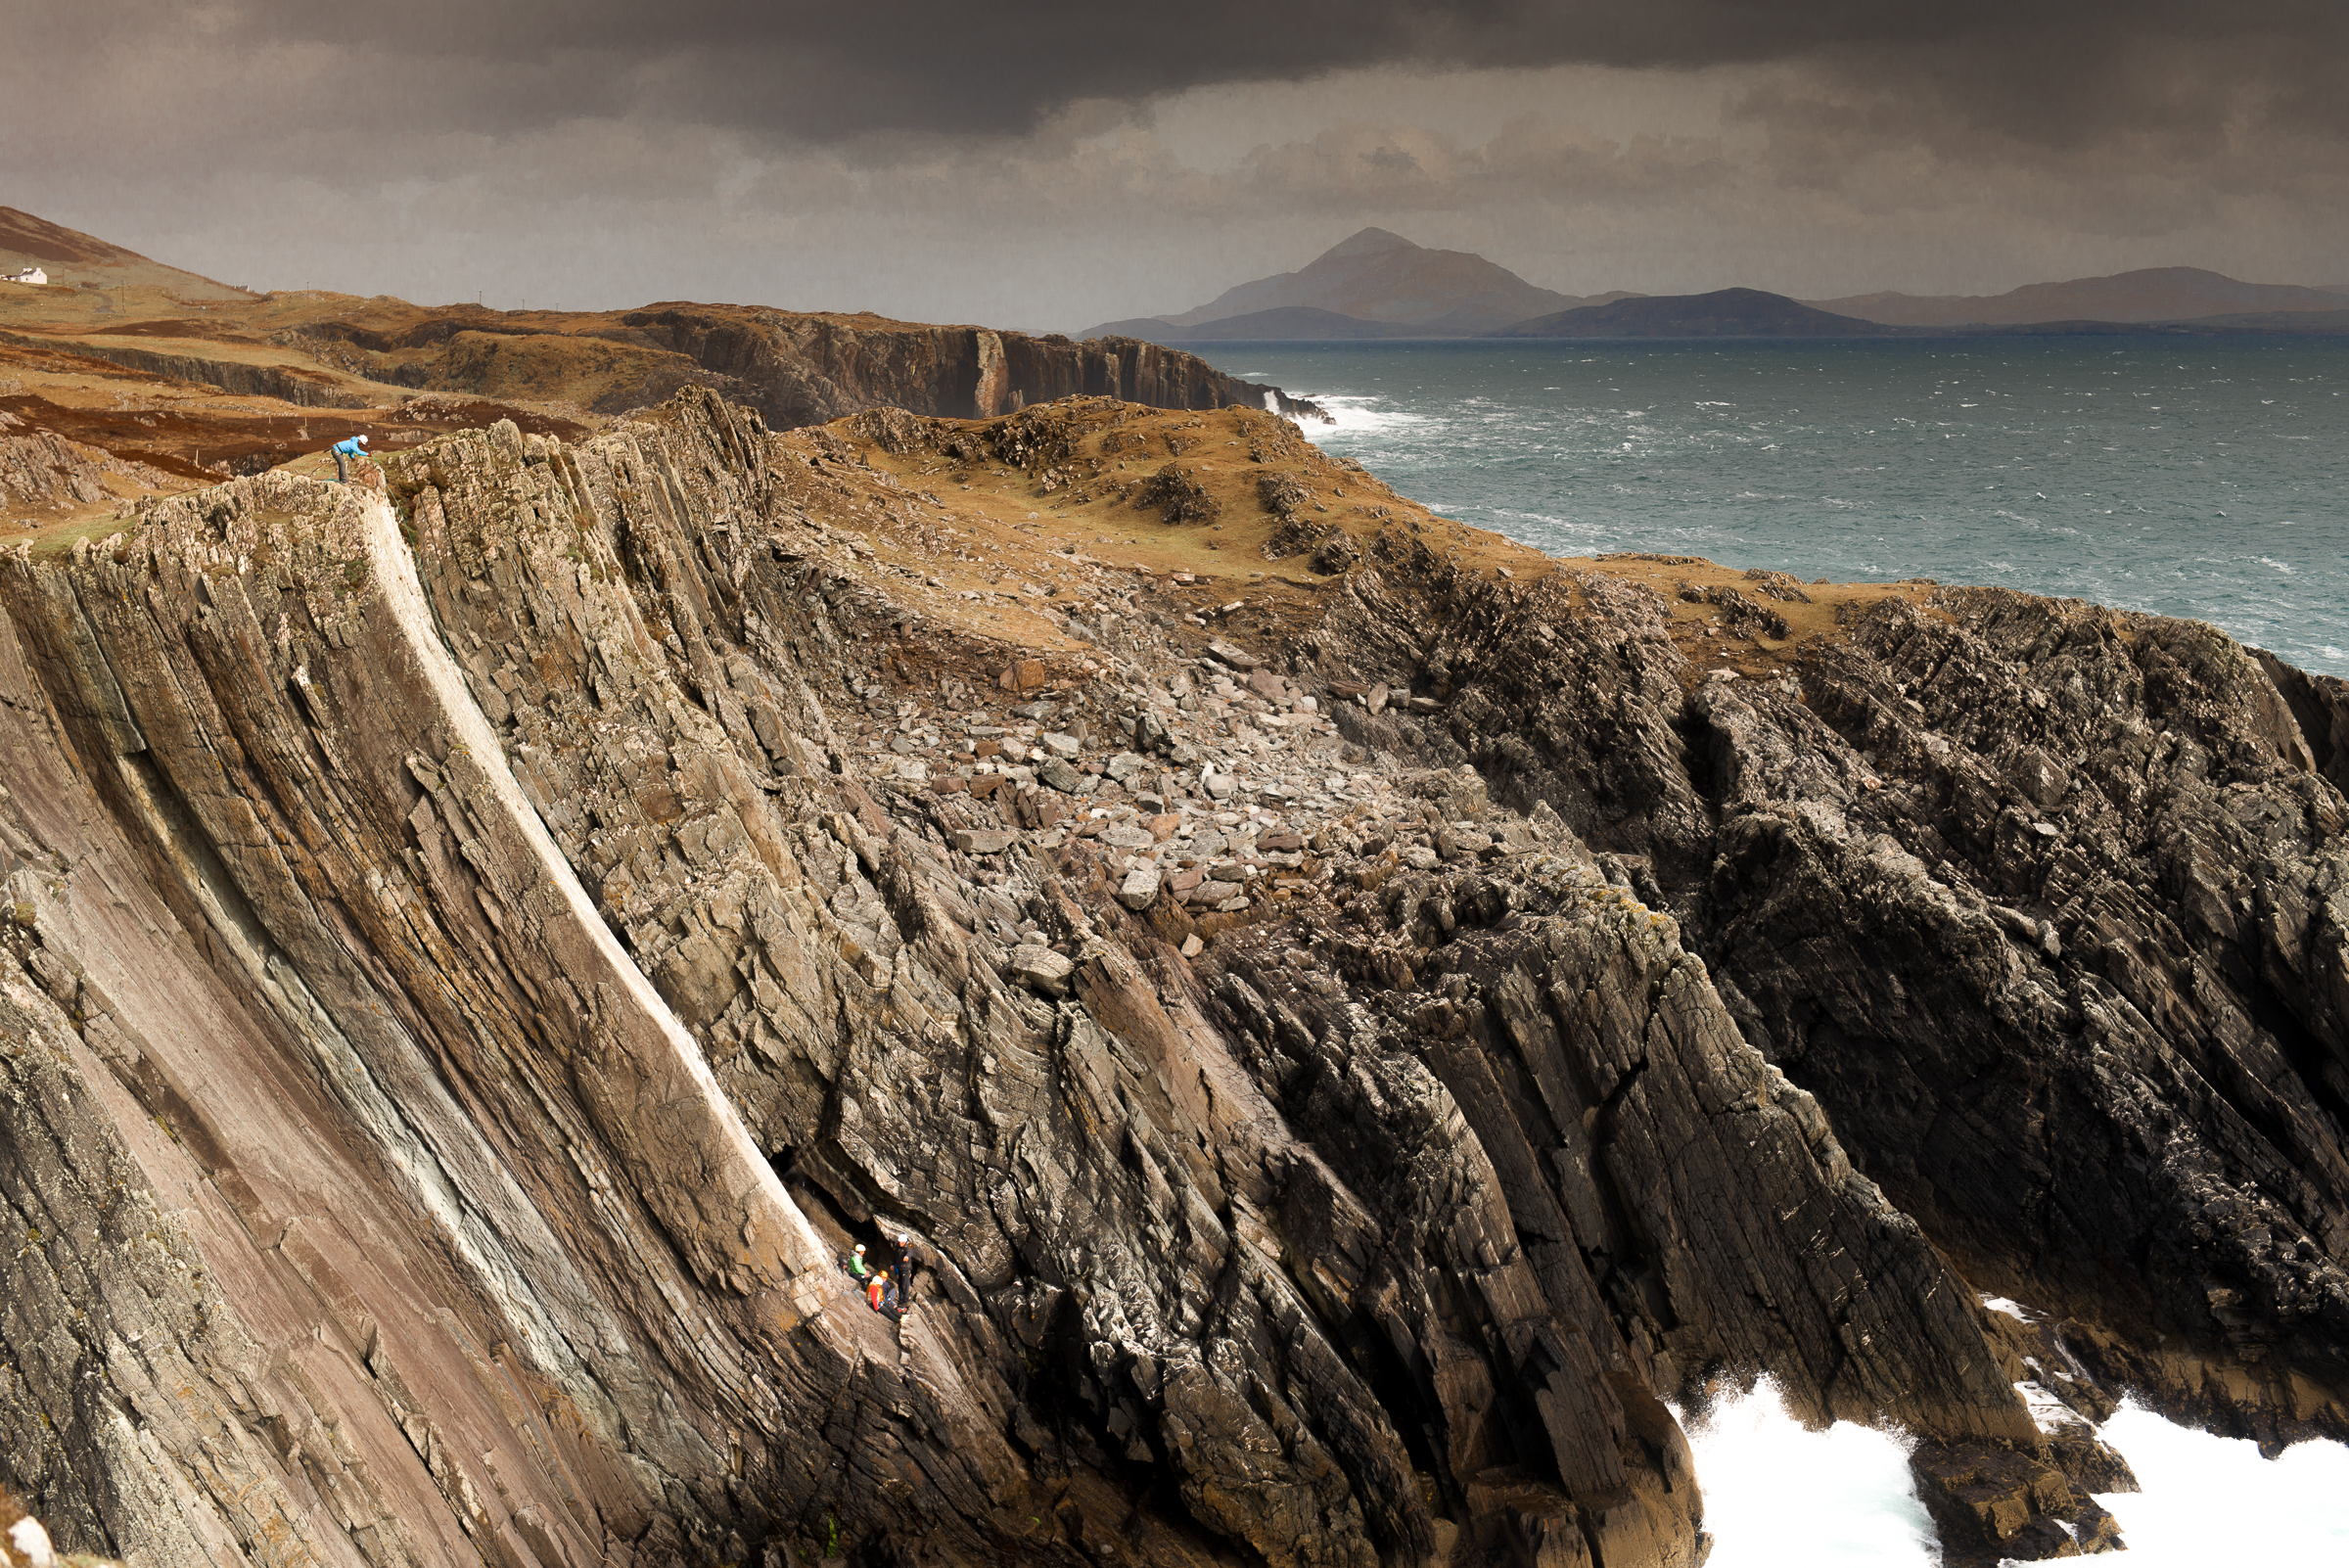 Climbing holiday and sustainable tourism in Ireland. Clare Island, County Mayo. Credit: John Mee Photography